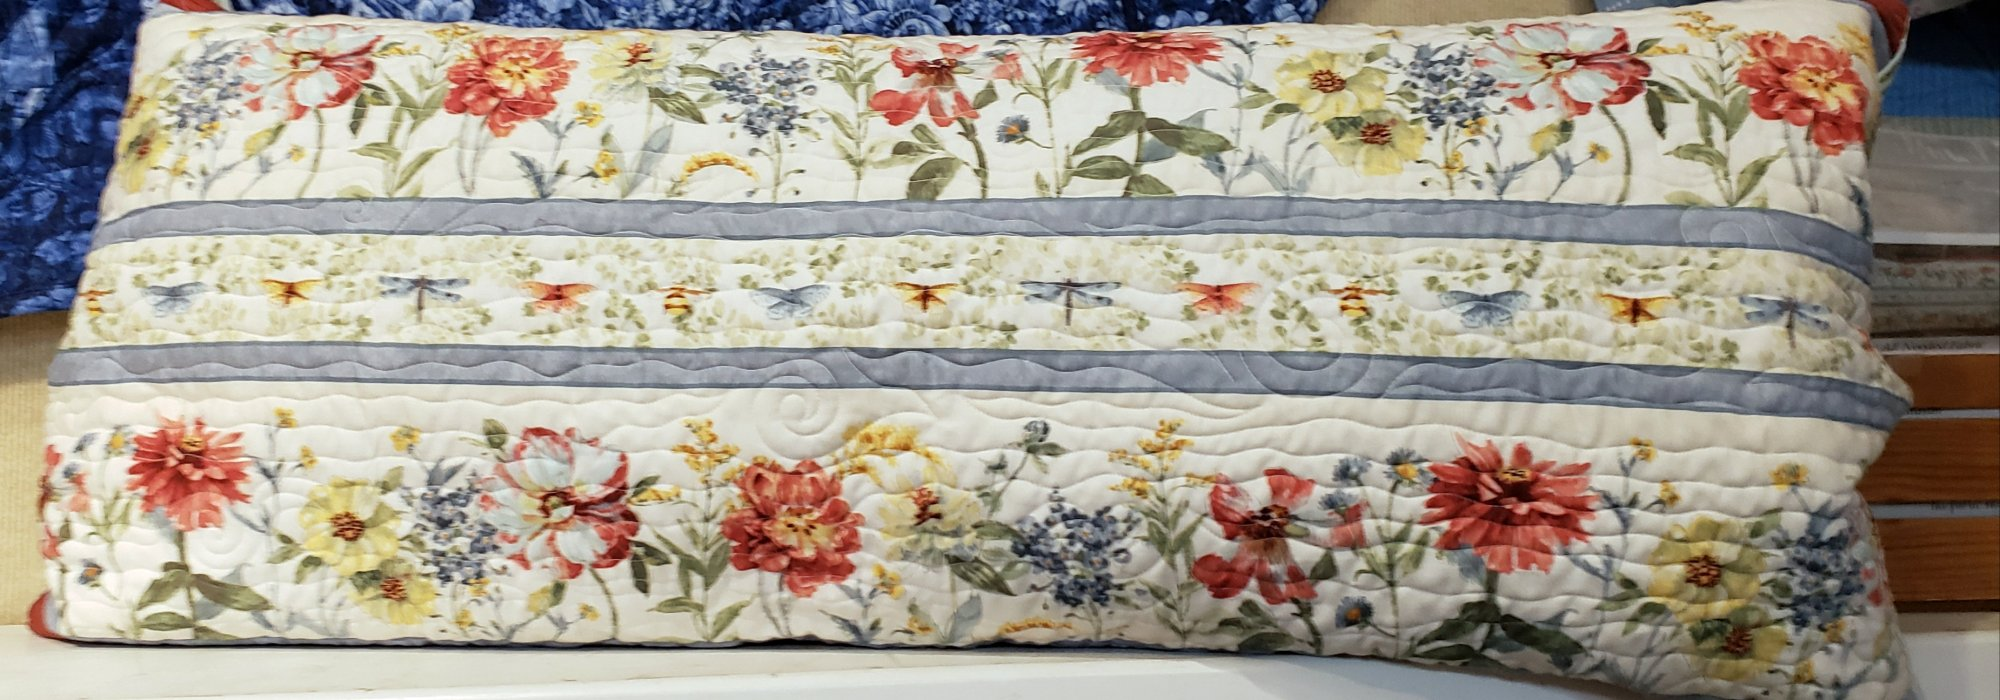 Bench Pillow Kit - Sketchbook Garden